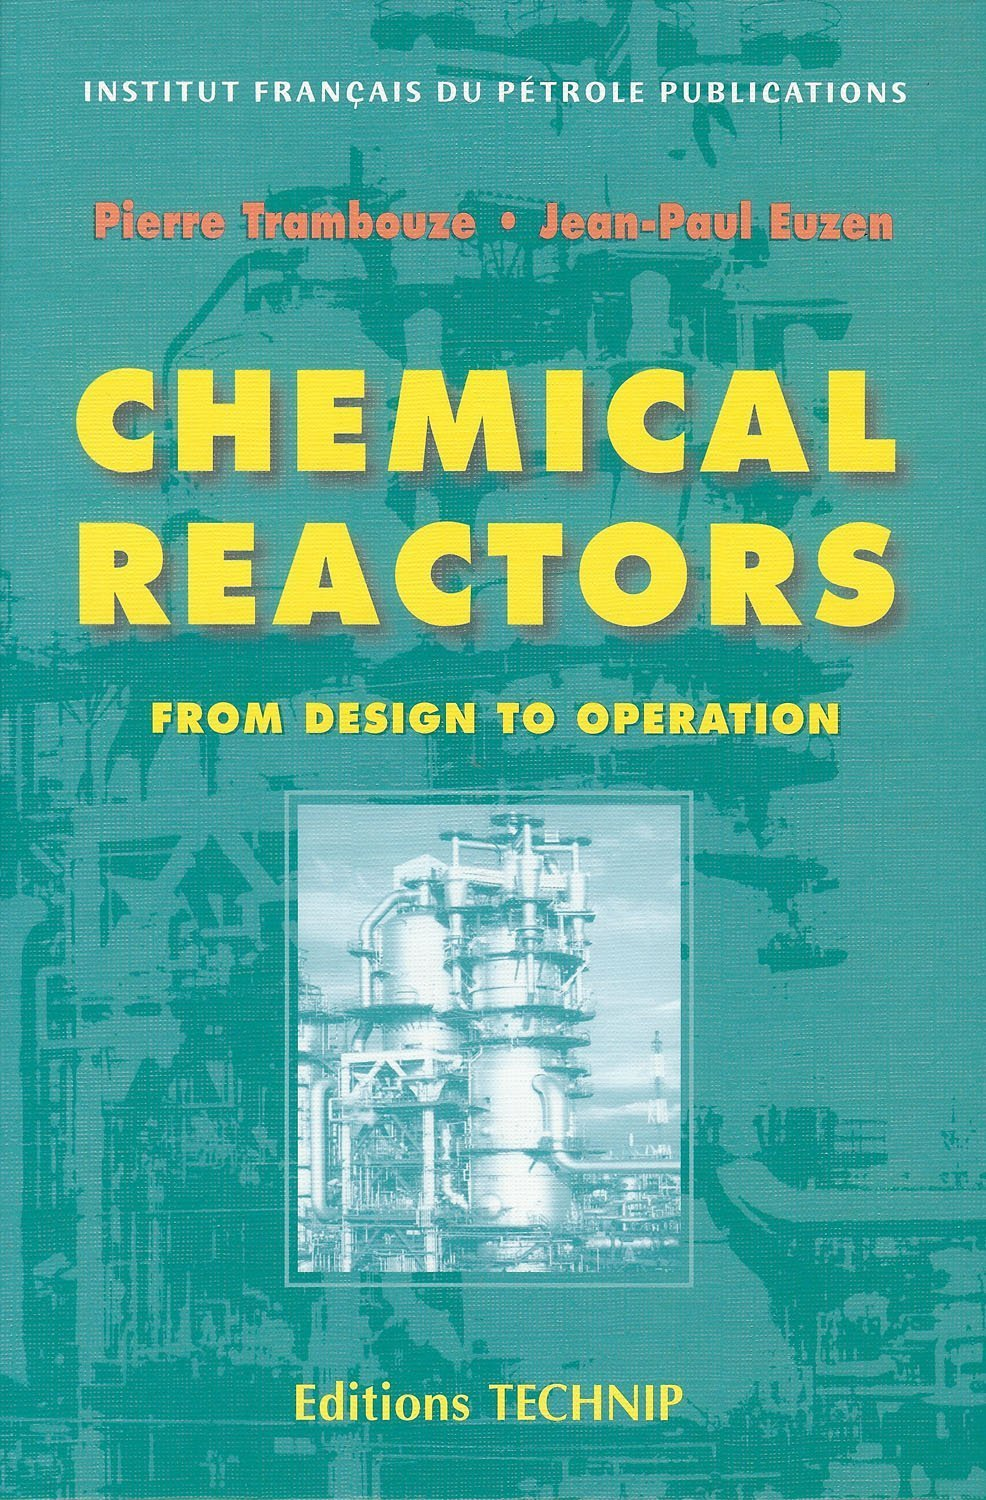 CHEMICAL REACTORS, FROM DESIGN TO OPERAT